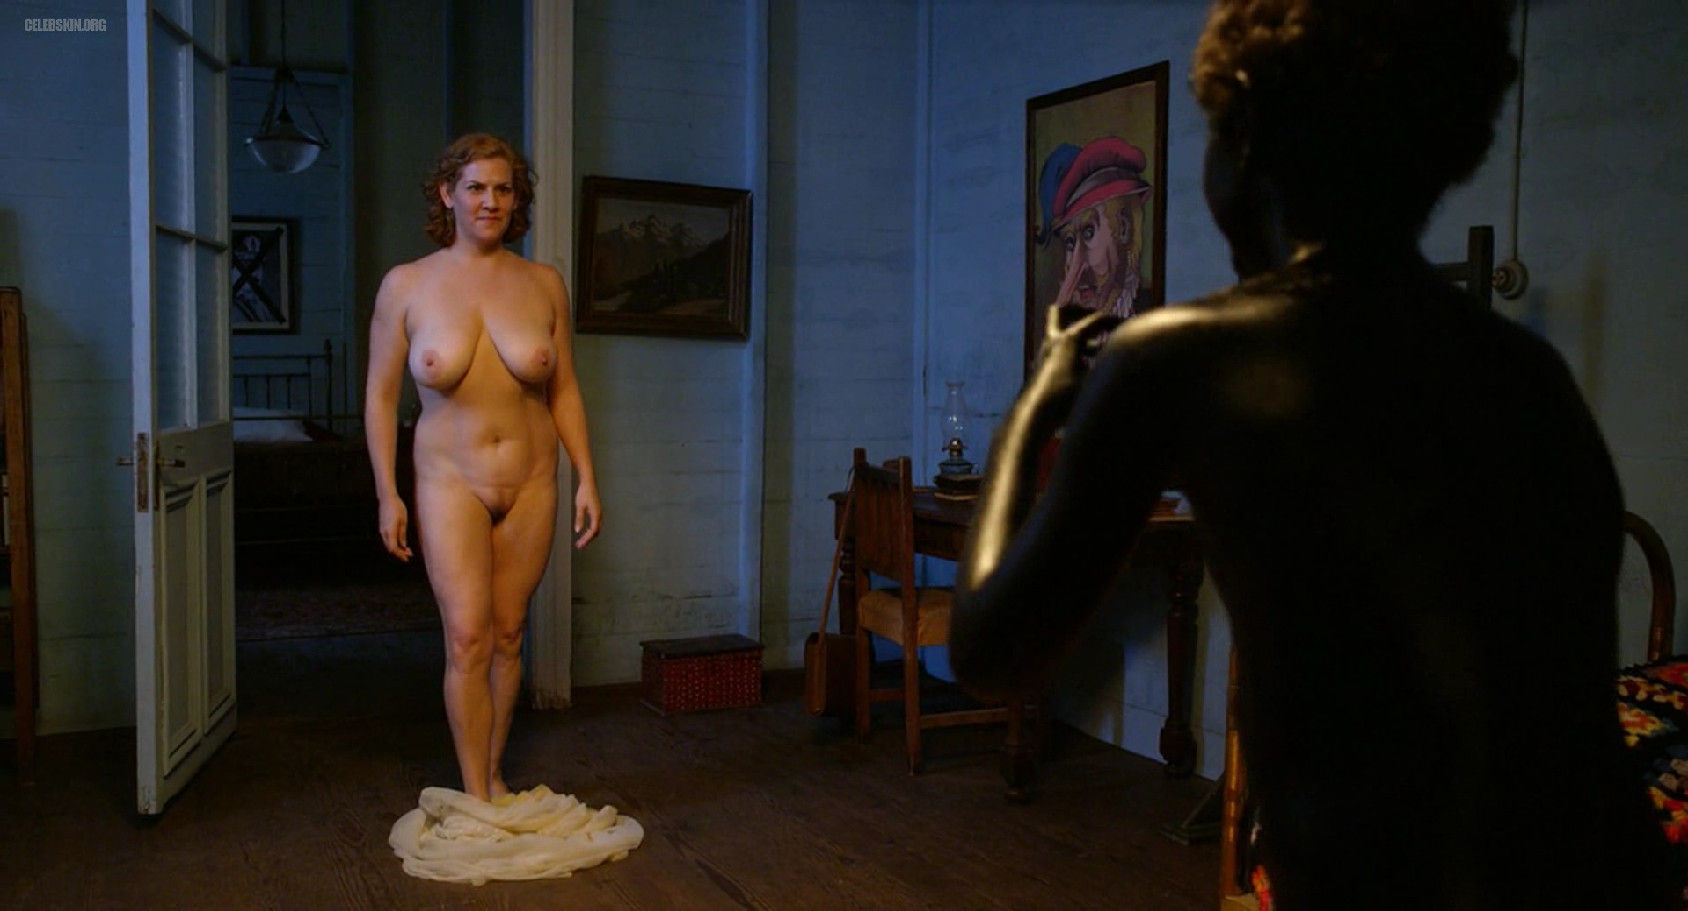 Full Frontal Nude Female Stock Images And Photos